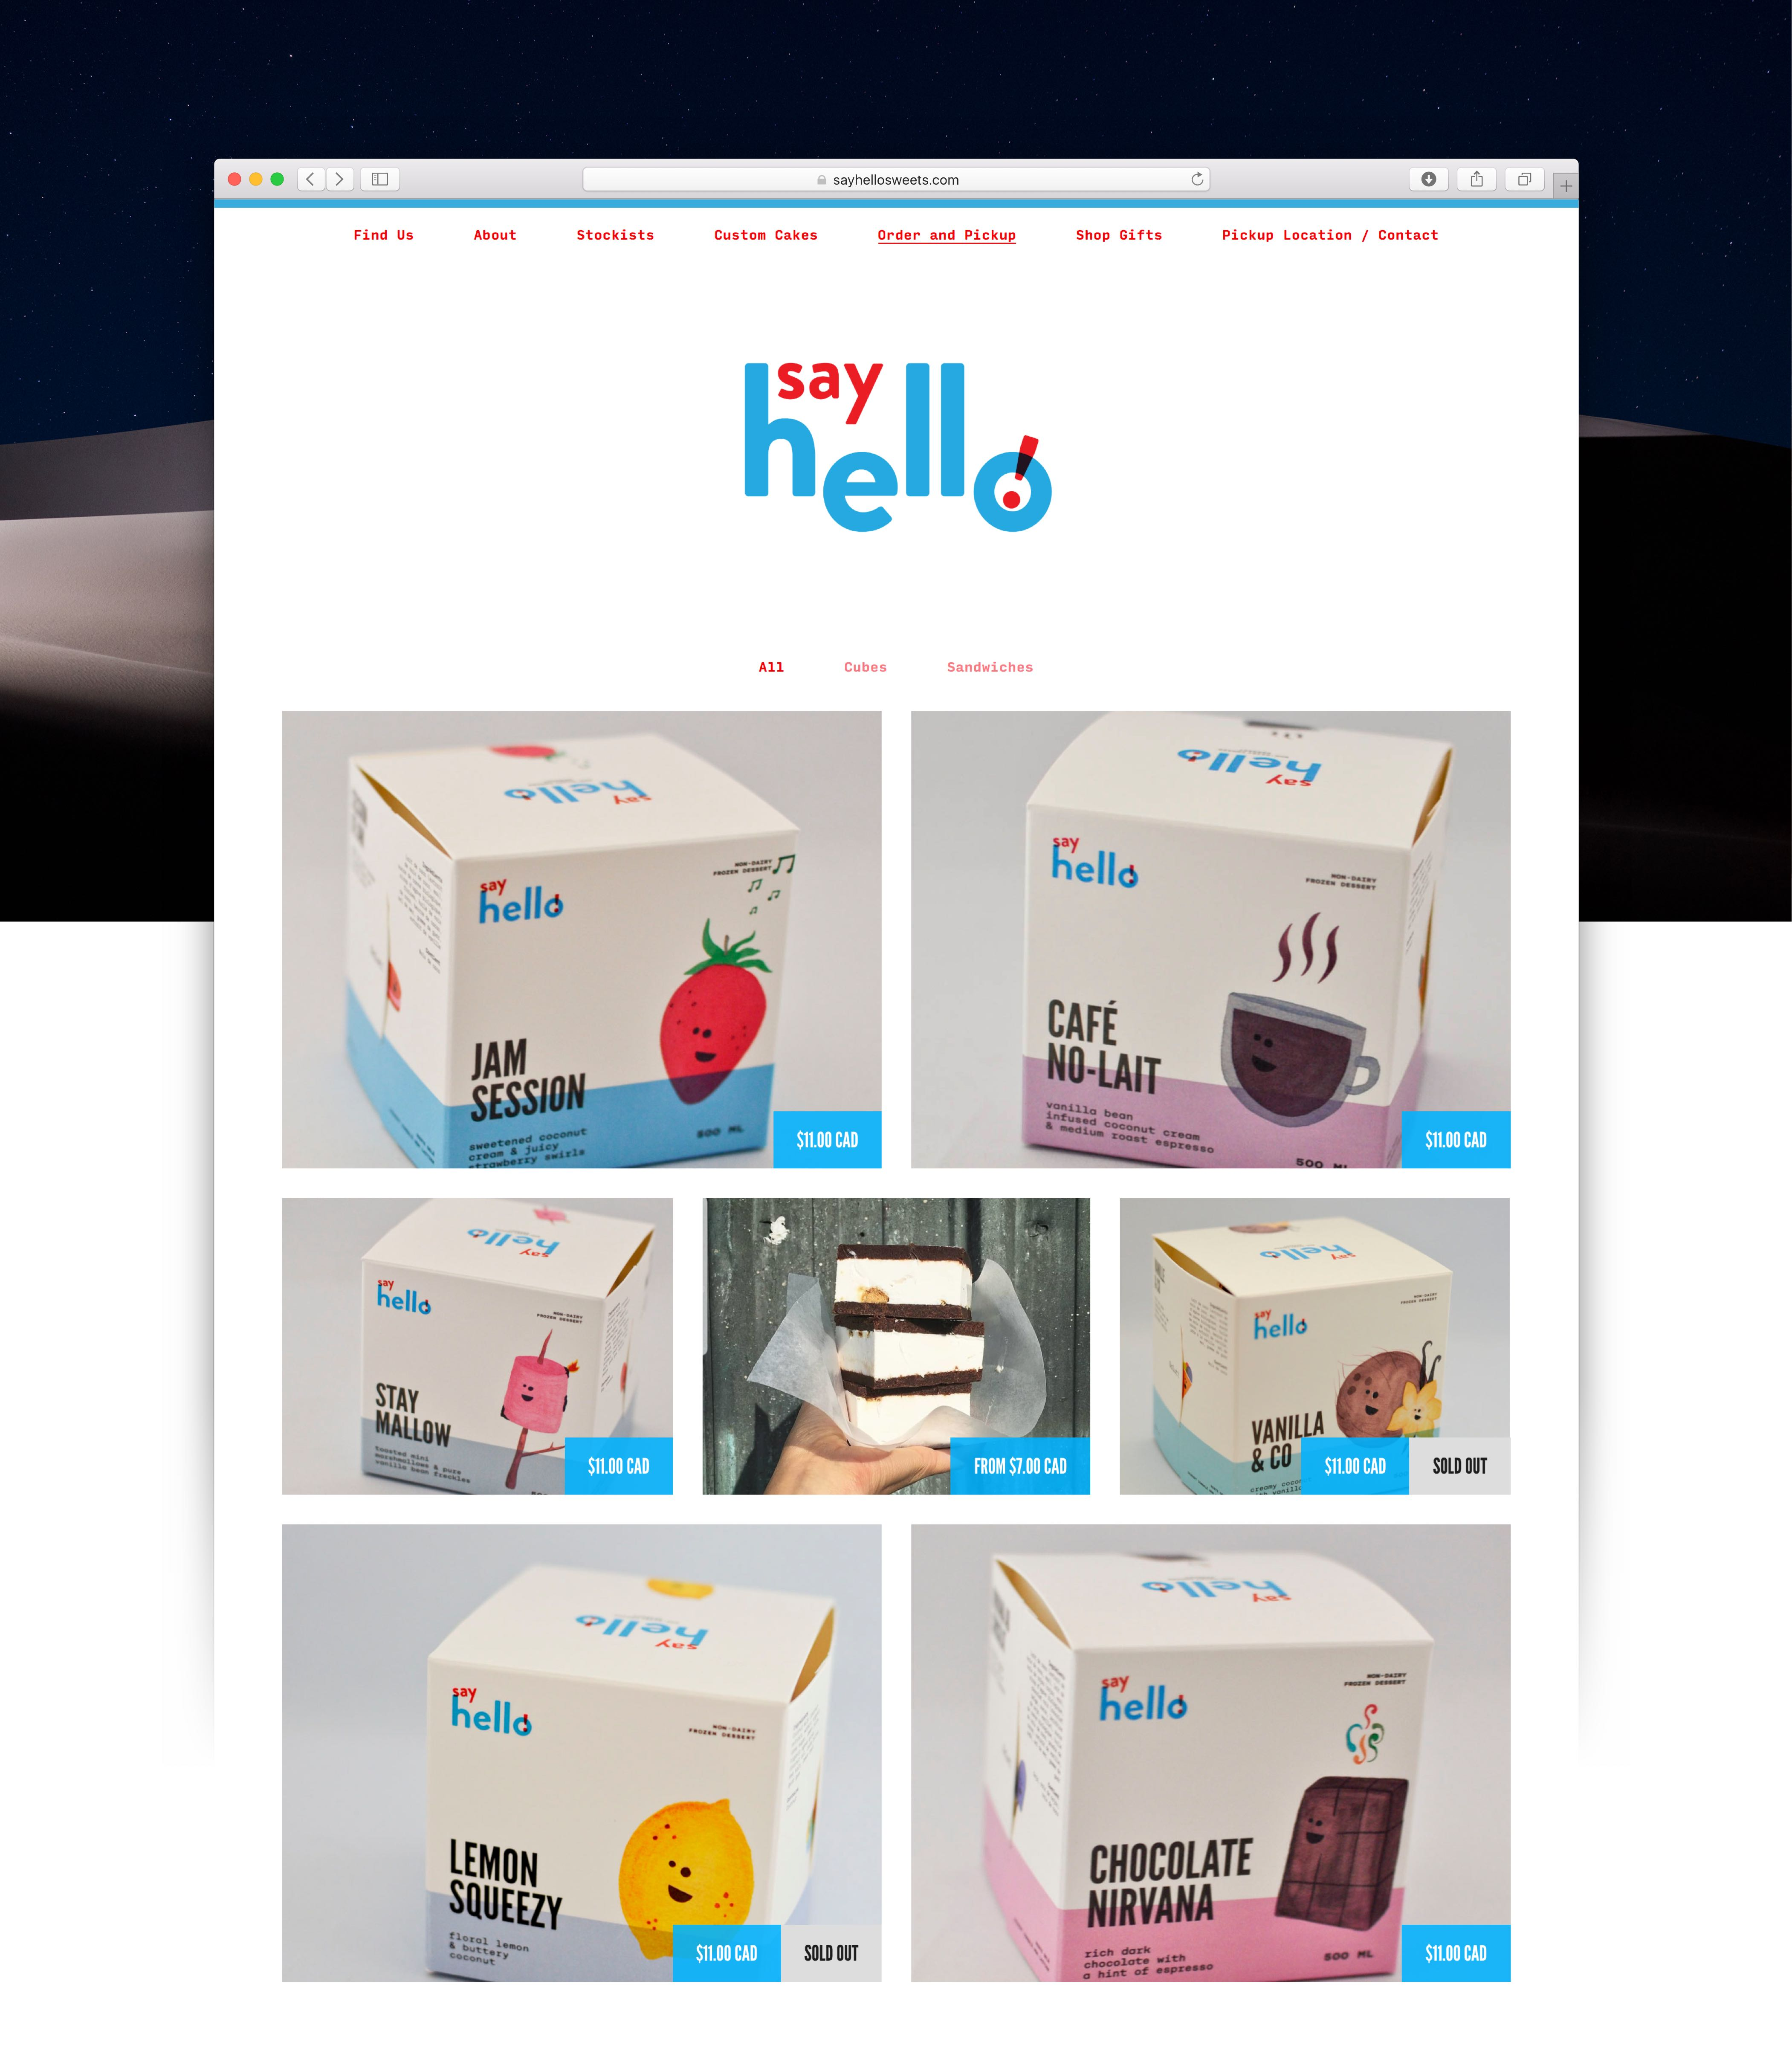 Say Hello Home page showing a grid layout of ice cream cubes for sale — by Yagnyuk.